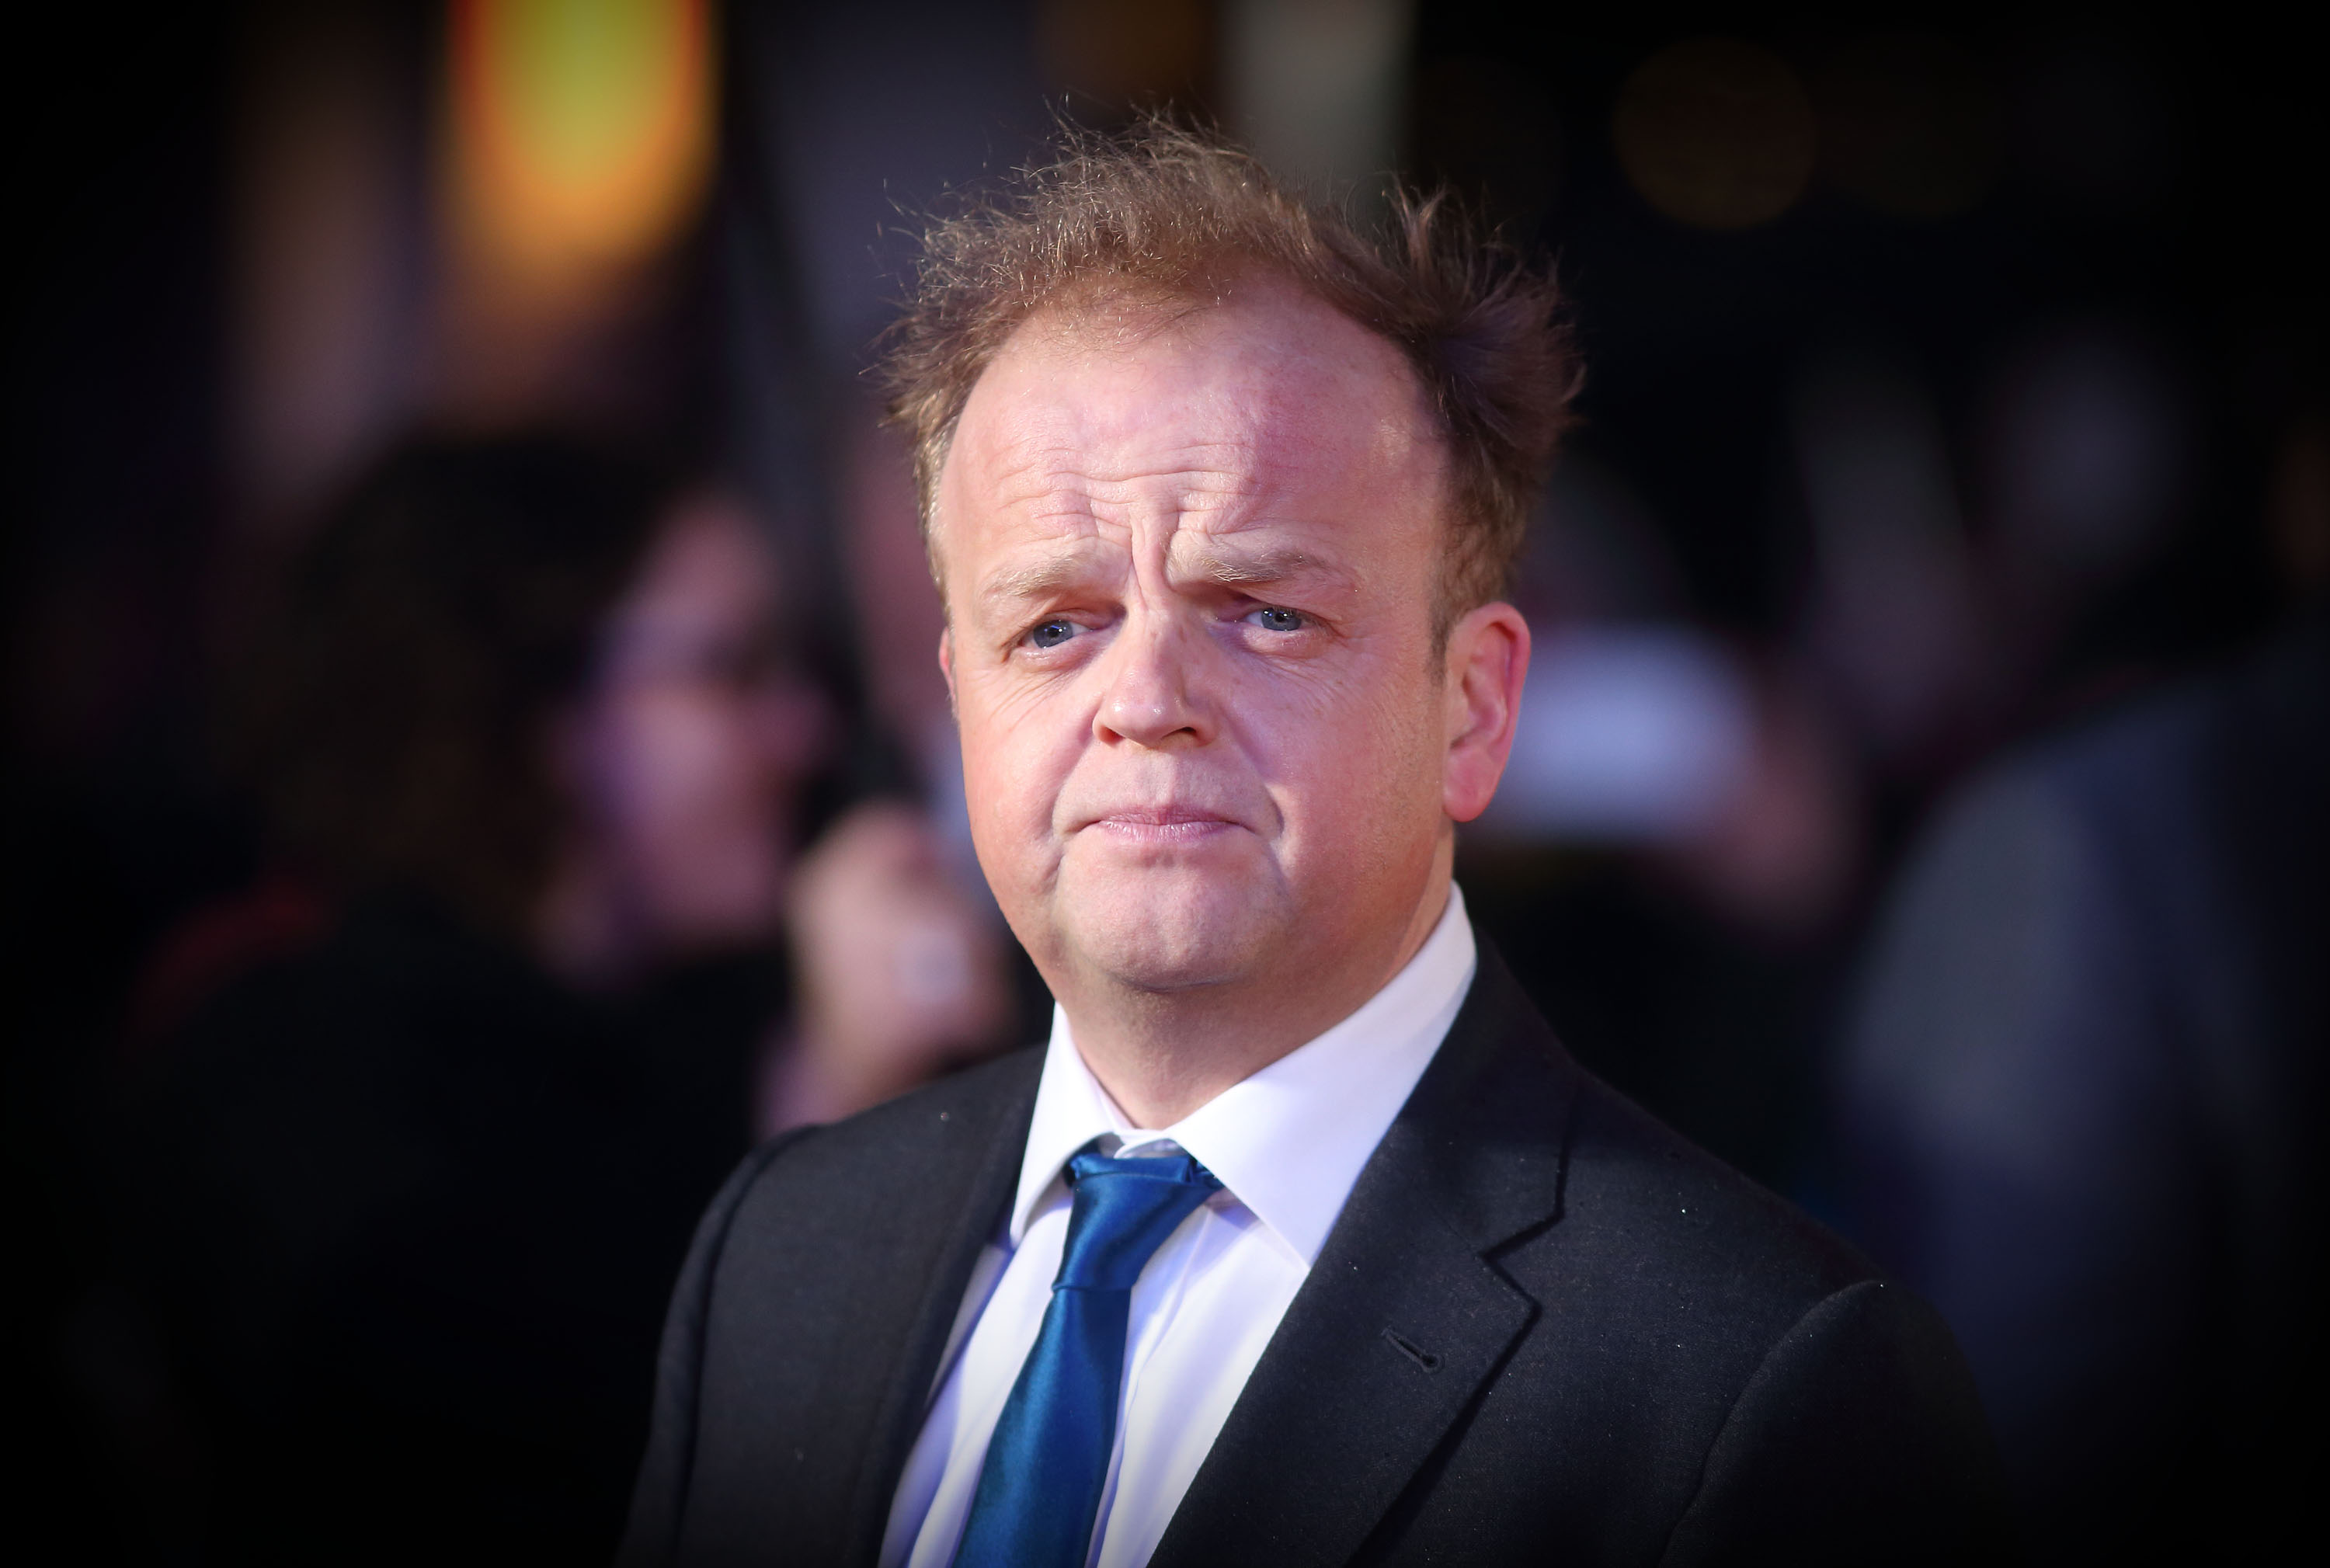 Toby Jones joins Sherlock series 4 as 'one of Doyle's finest villains'